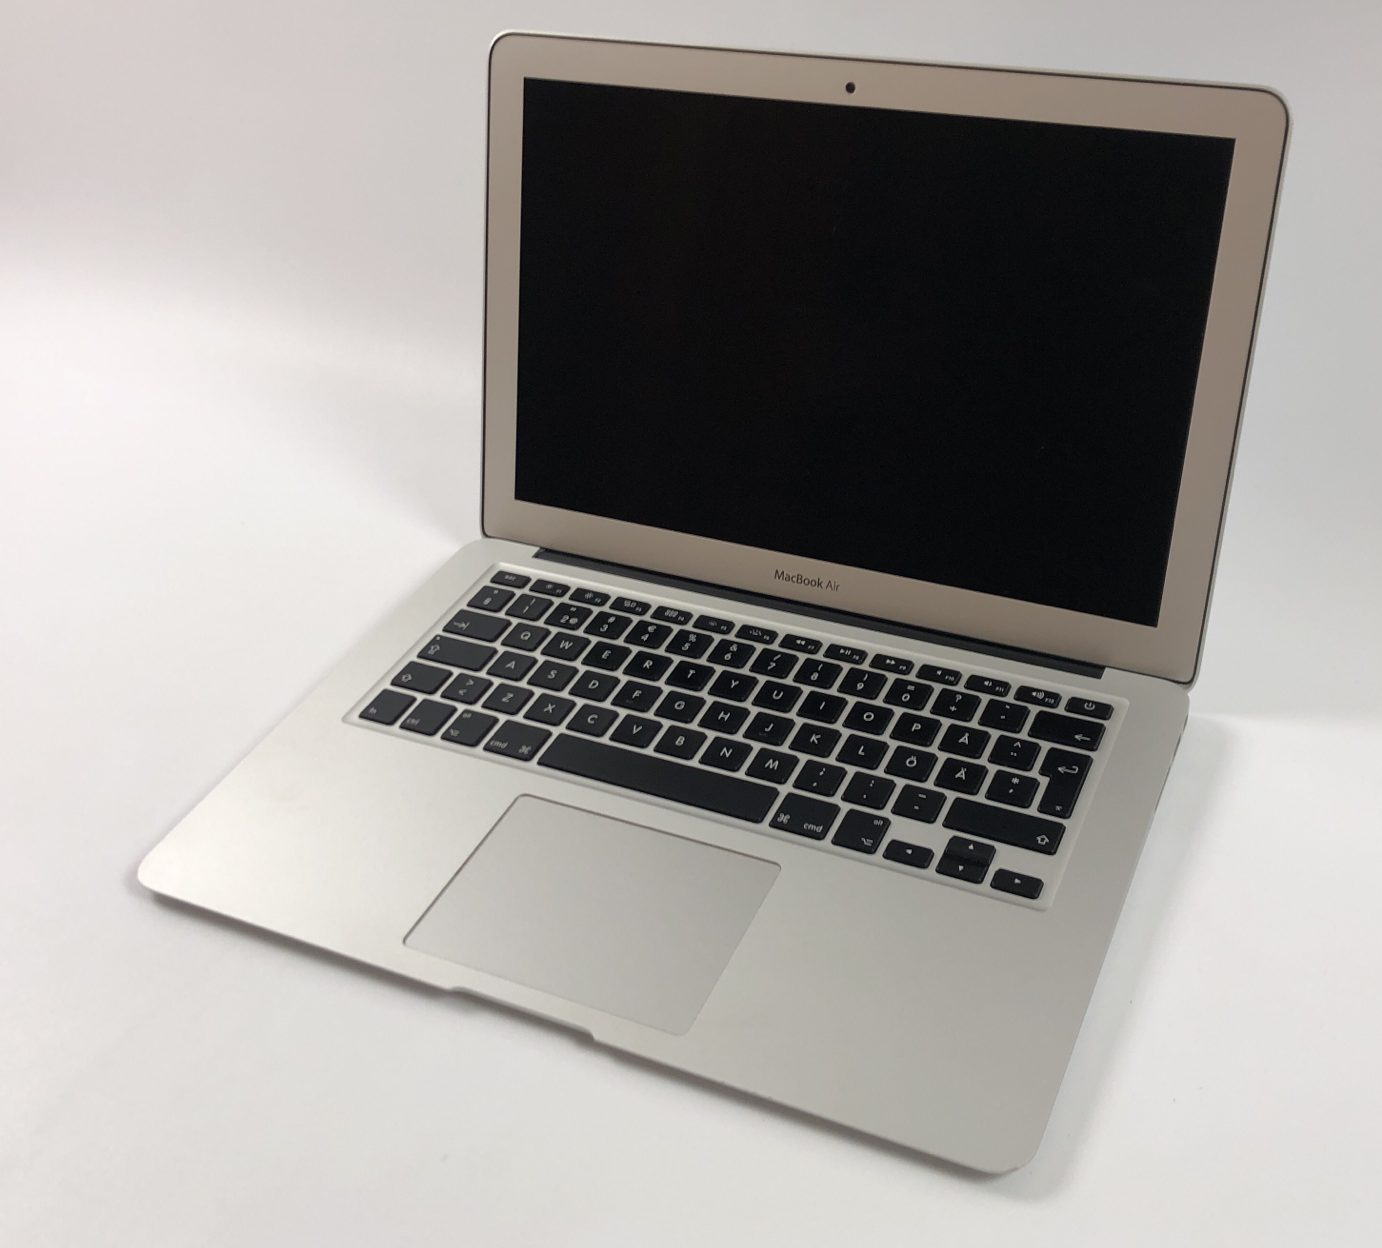 "MacBook Air 13"" Early 2014 (Intel Core i5 1.4 GHz 4 GB RAM 128 GB SSD), Intel Core i5 1.4 GHz, 4 GB RAM, 128 GB SSD, Kuva 1"